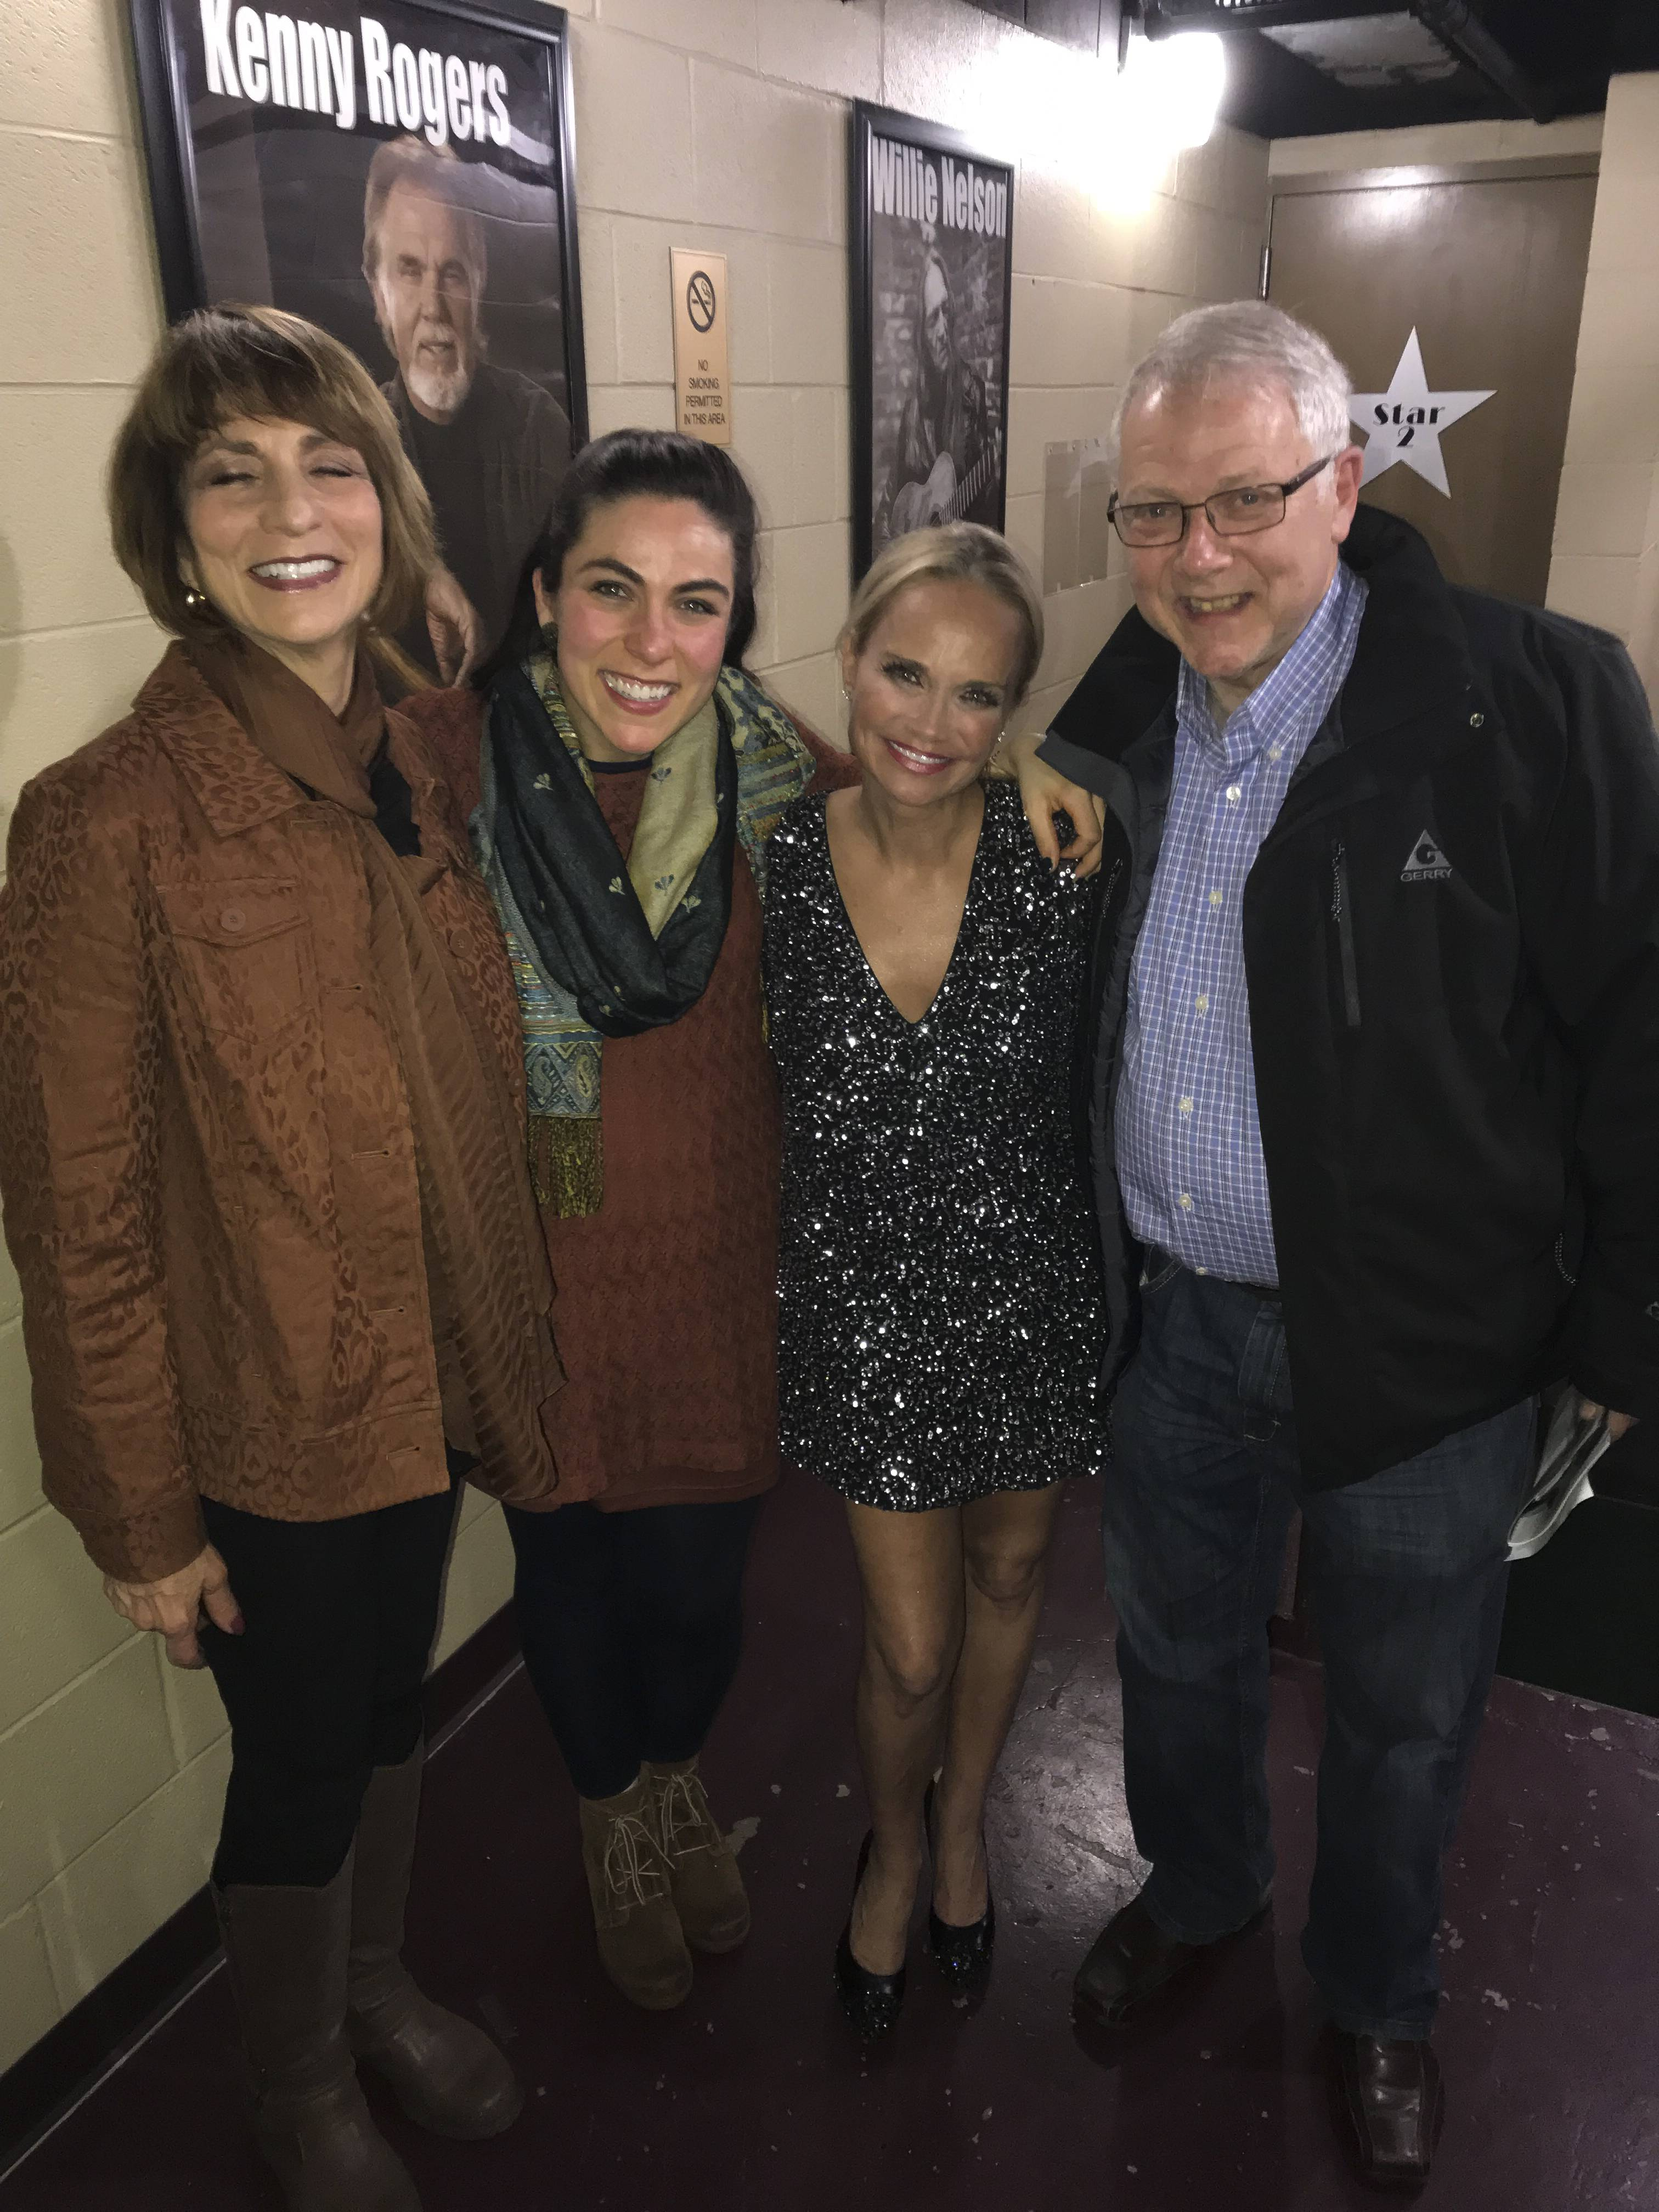 Kristin Chenoweth poses backstage with Allison Zabelin and Allison's parents, Barbara Sered-Zabelin and Don.